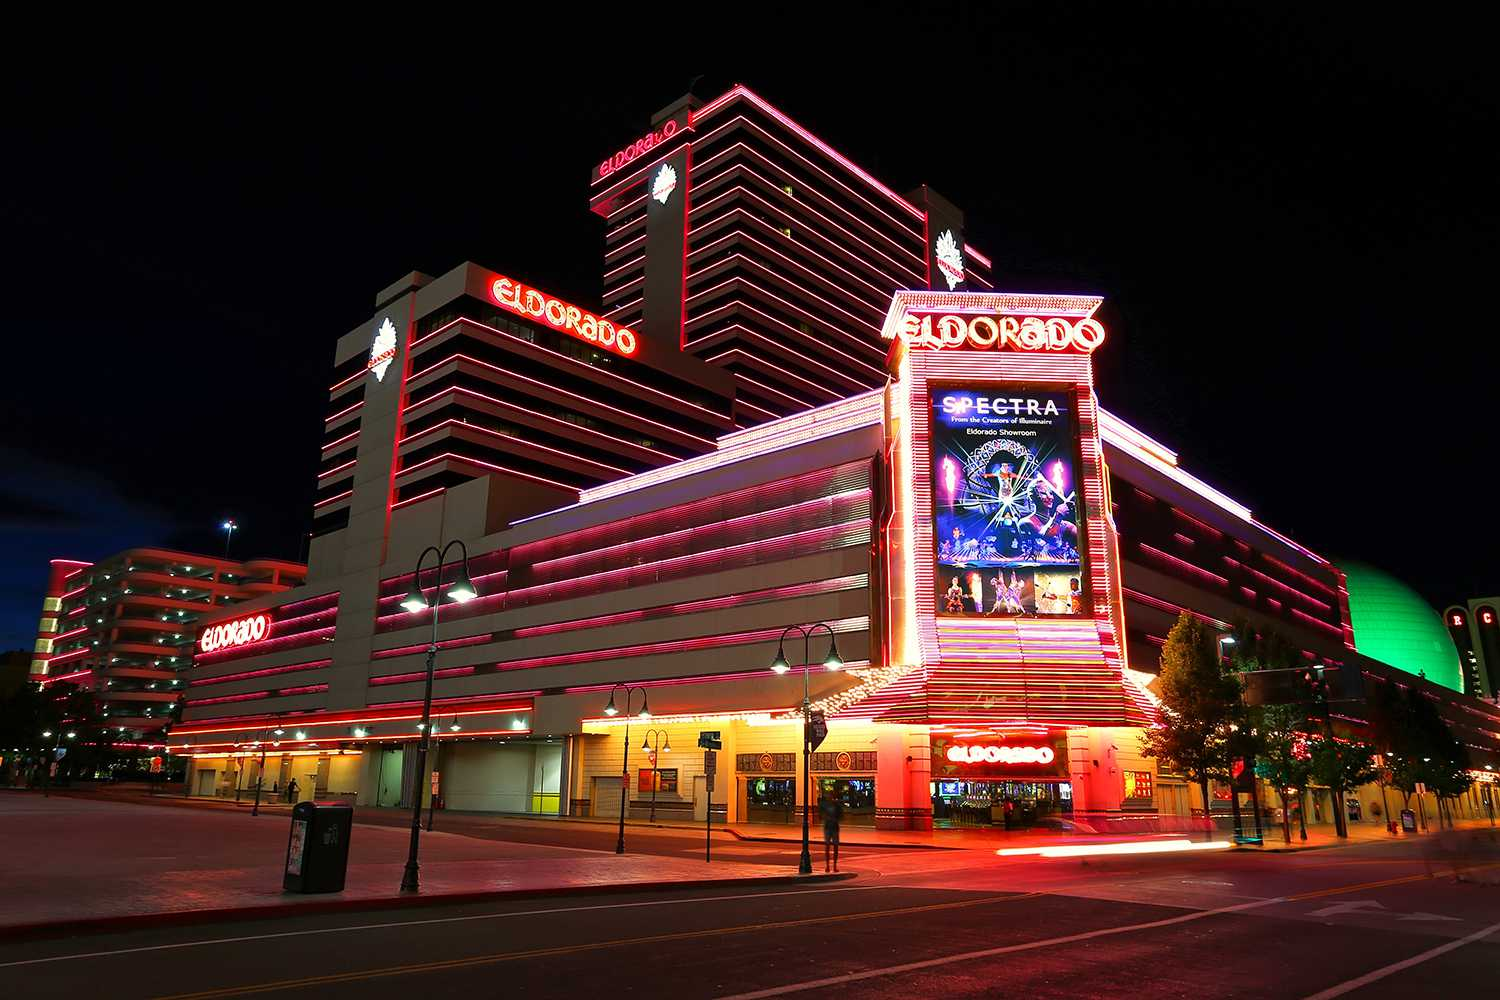 Hotels In Reno Nevada On The Strip